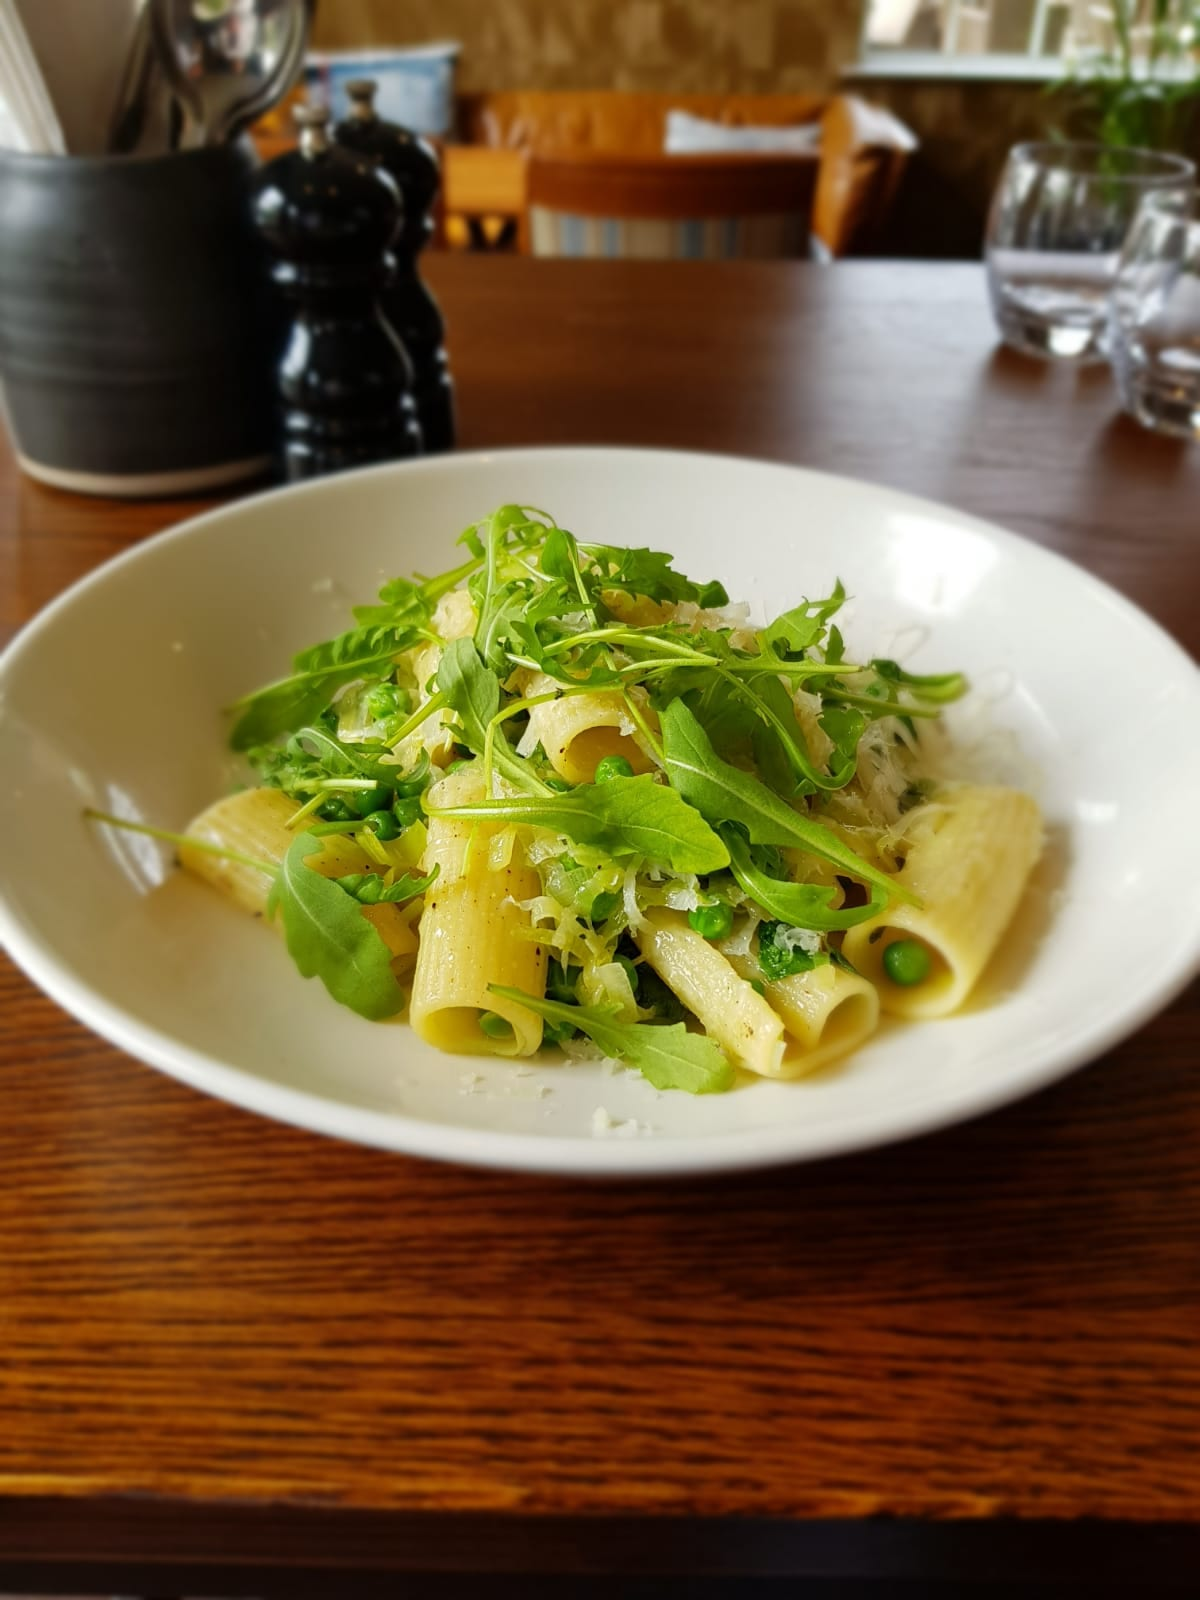 Rigatoni Pasta, Peas, Leeks, Mint & Gran Moravia - Everything on the new menu is cooked fresh using the best quality